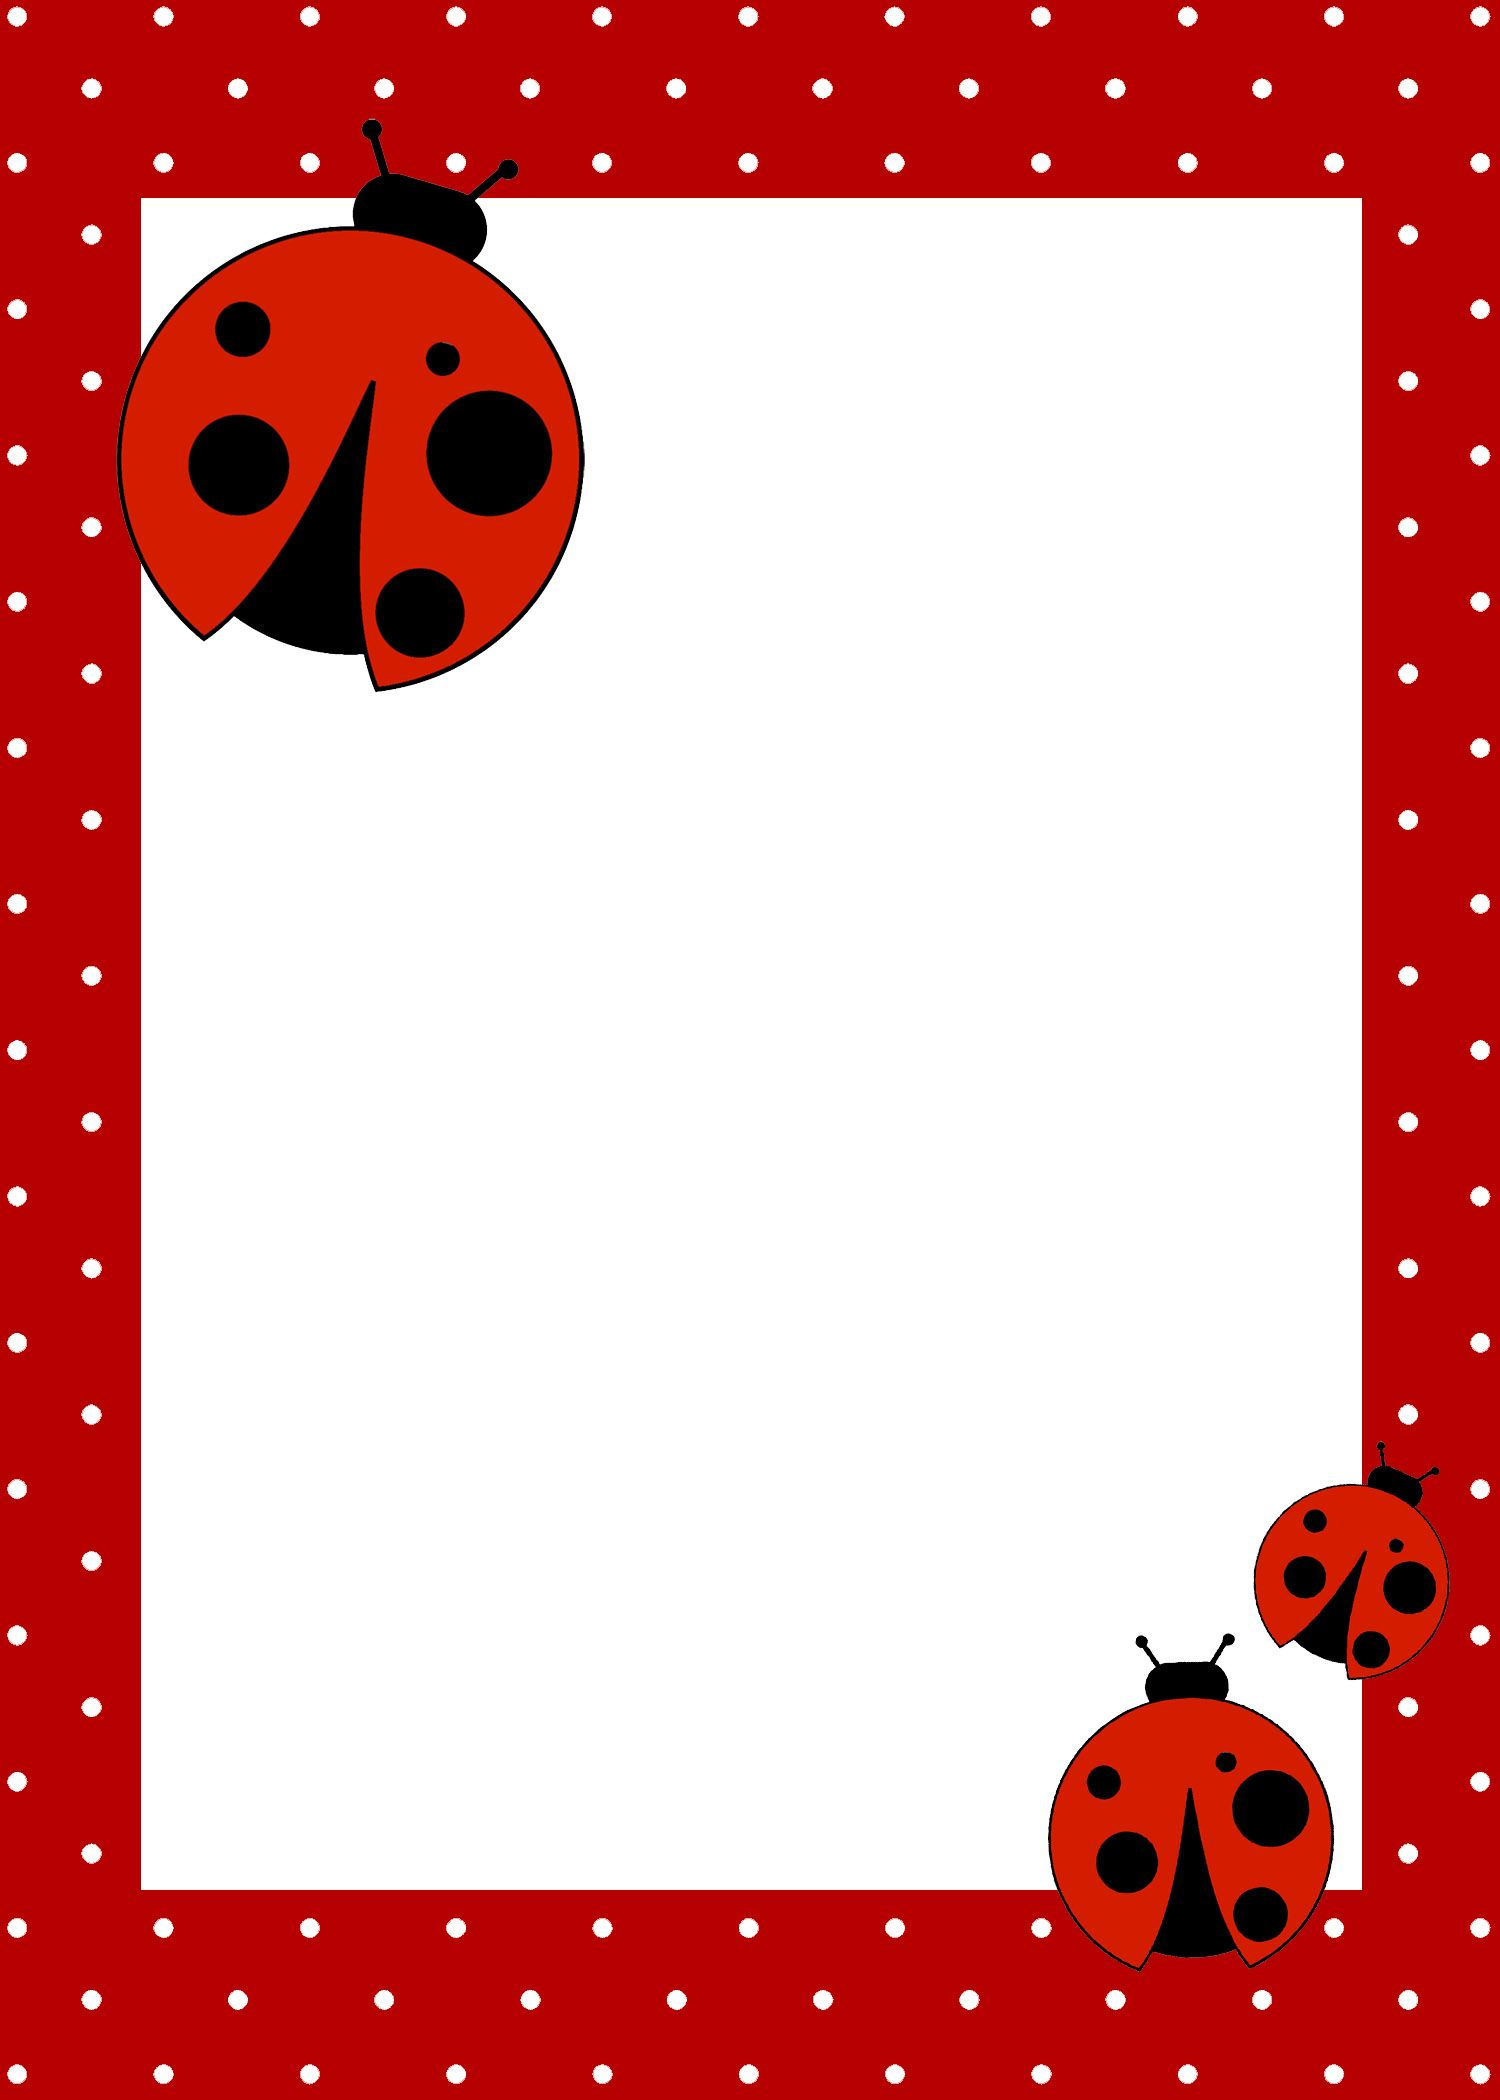 Ladybug Birthday Party With Free Printables | Birthday Party Ideas - Free Printable Ladybug Baby Shower Invitations Templates